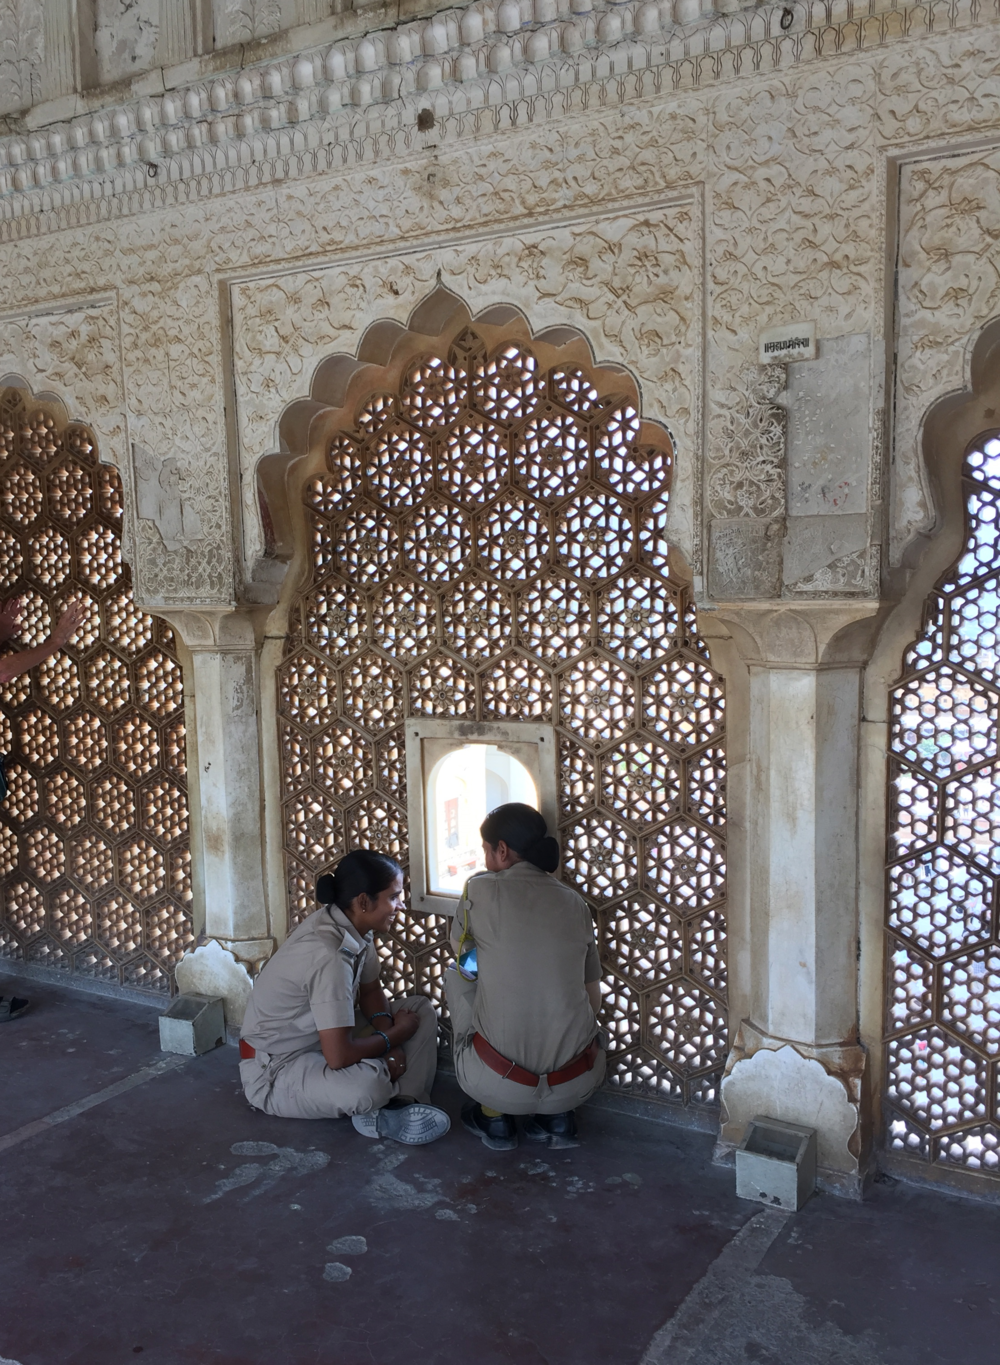 Two guards on a break at the Amber Palace, Jaipur.